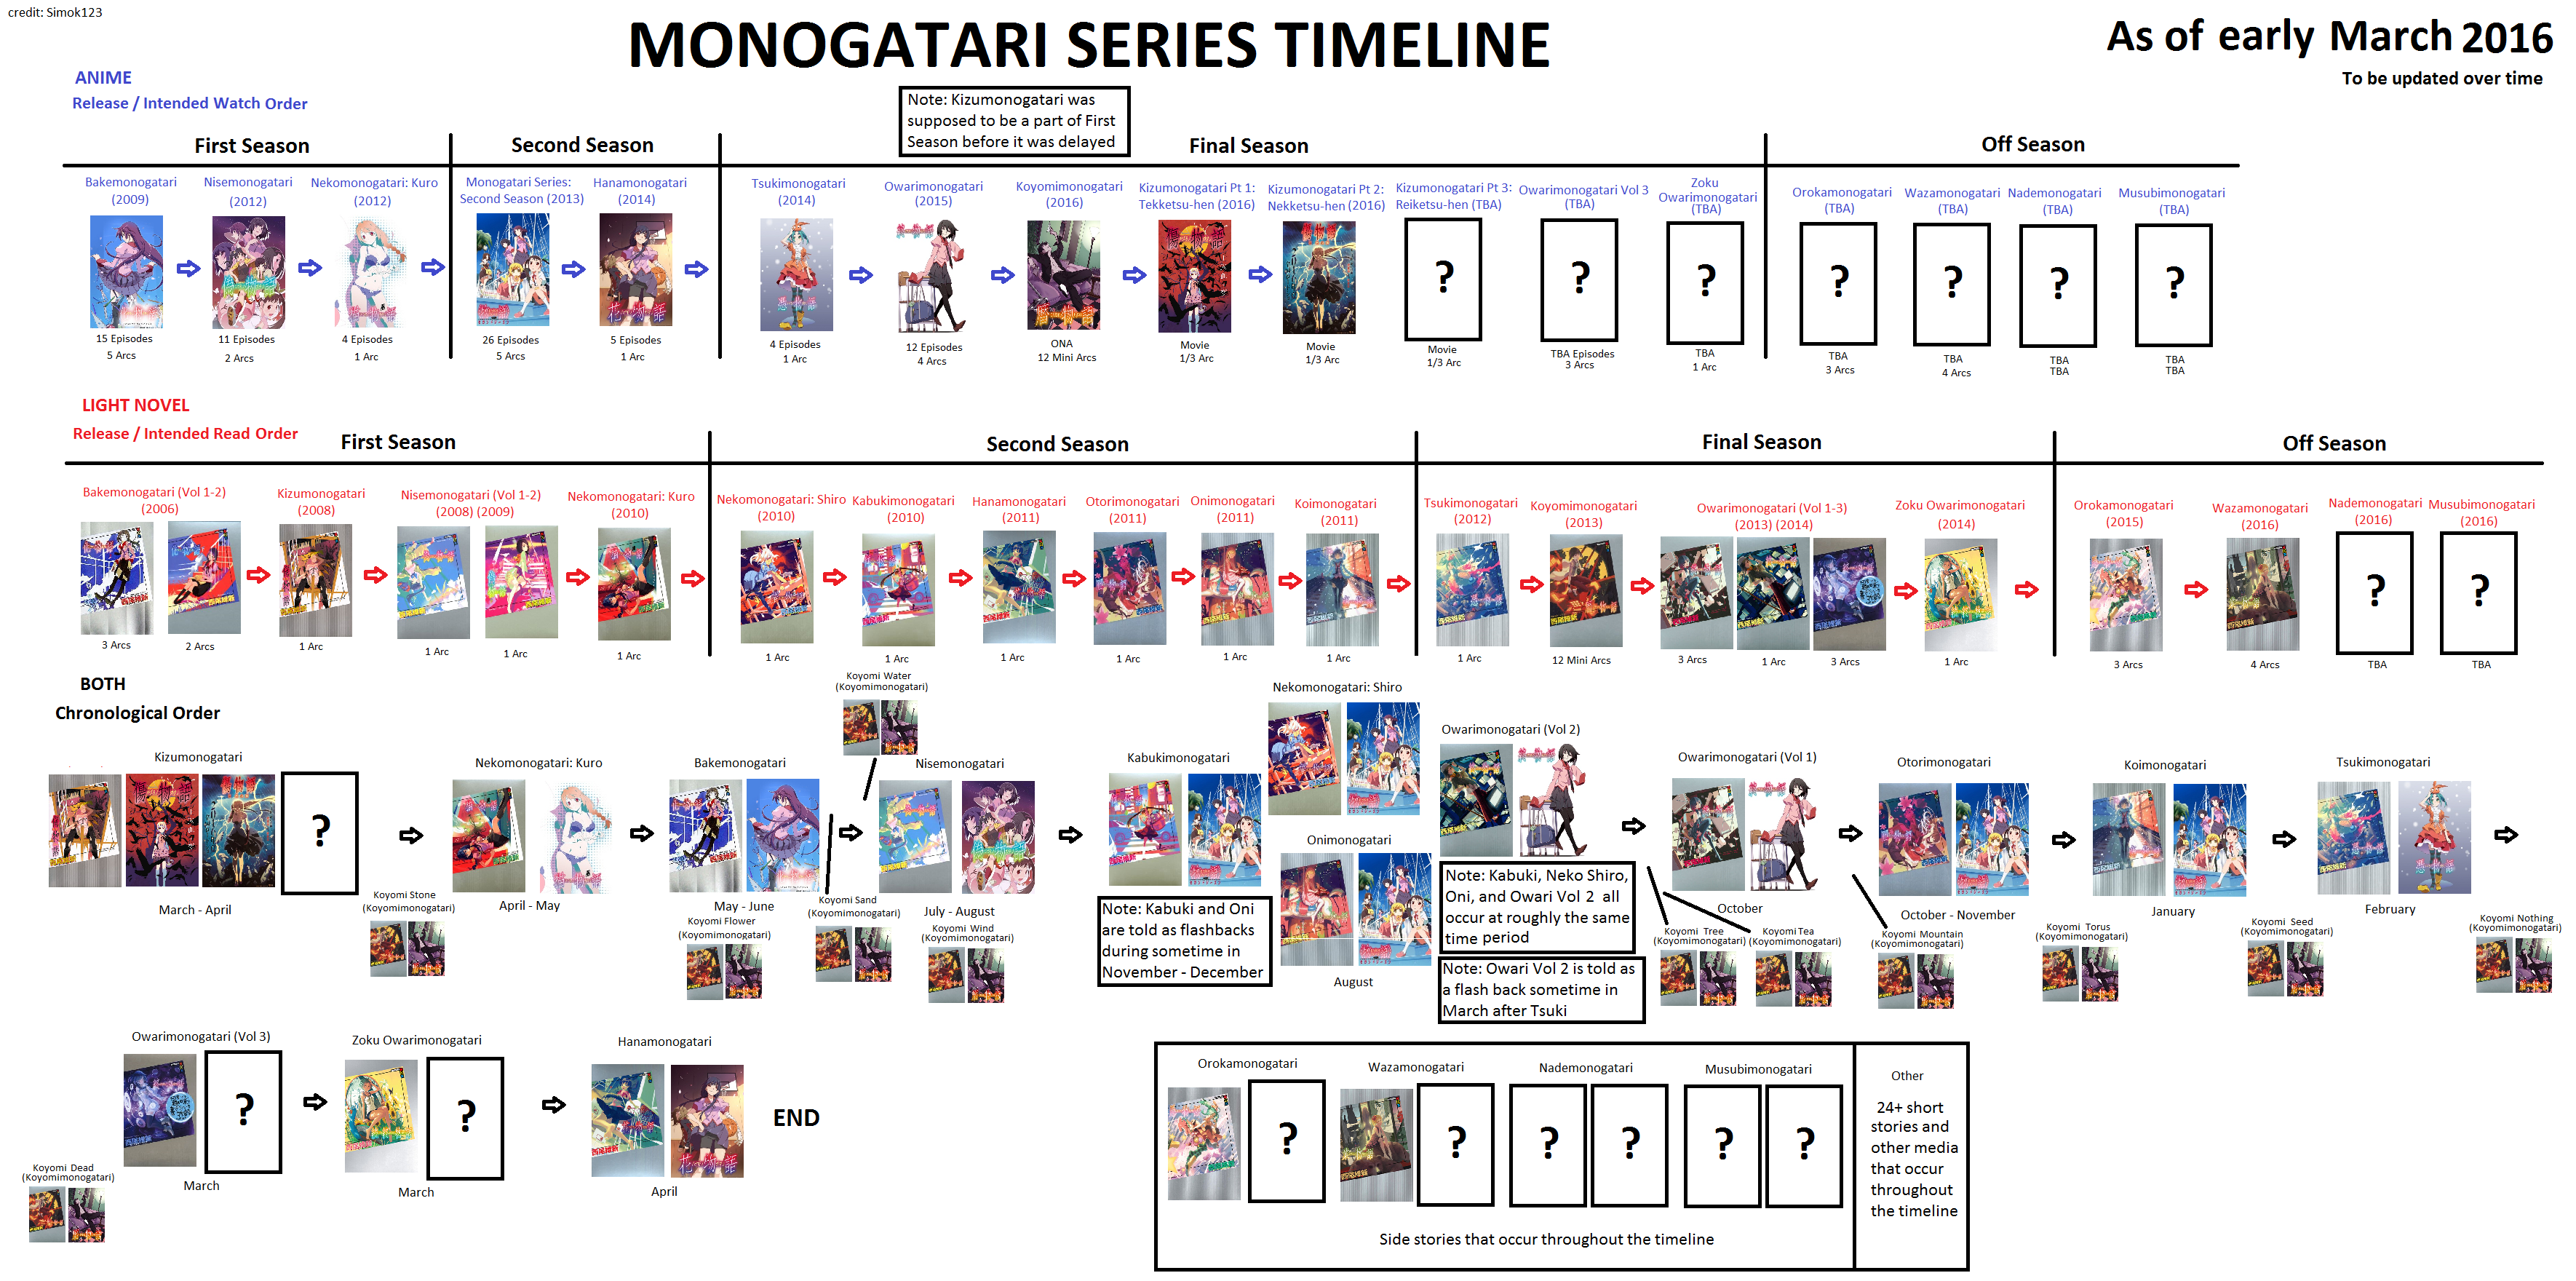 Vignette2wikianocookie Bakemonogatari1645 Images A Ad Timeline March 2016 Revision Latestcb20160406031531